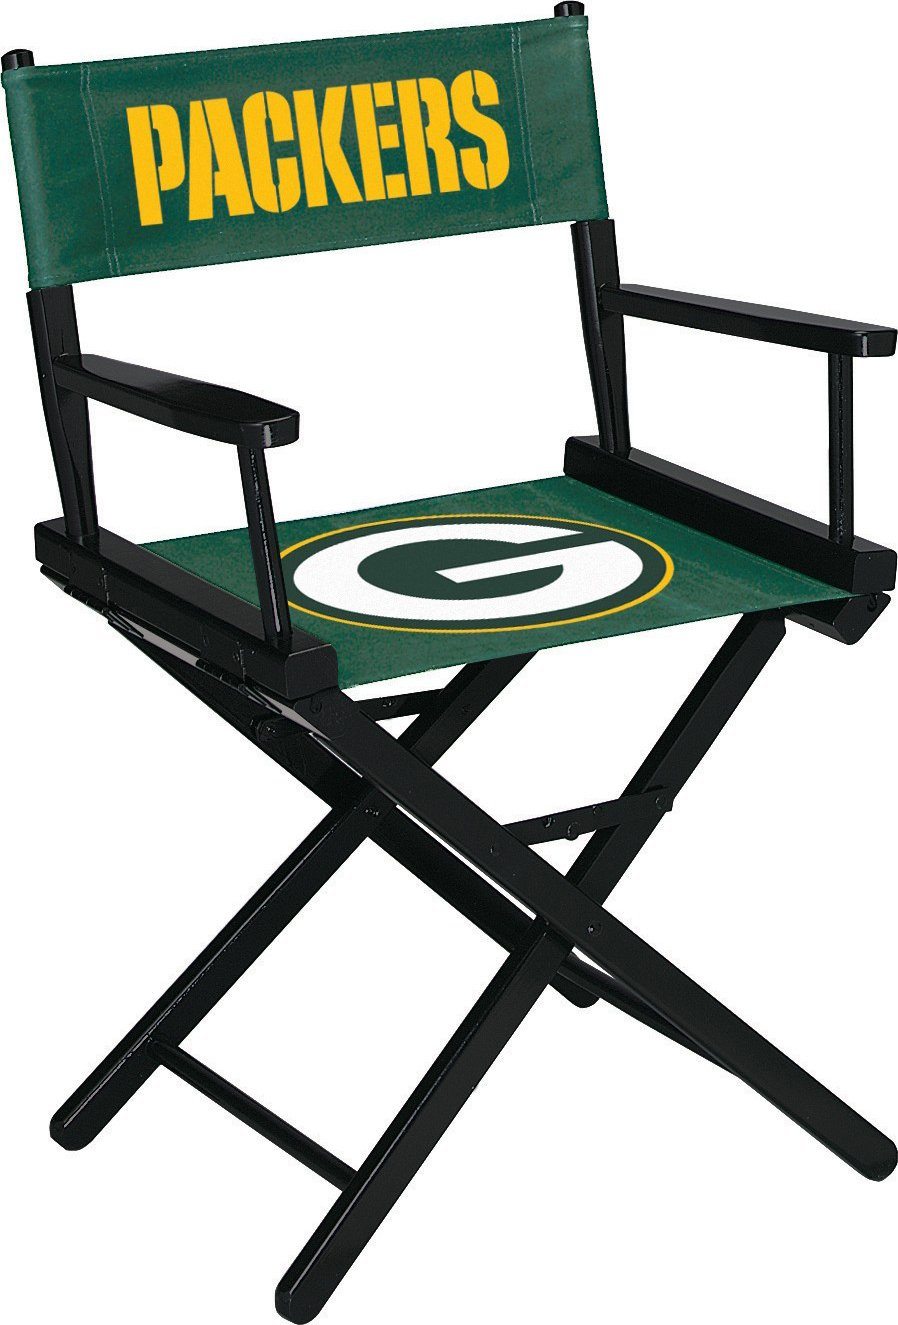 Imperial Officially Licensed NFL Furniture: Short (Table Height) Directors Chair, Baltimore Ravens Table Height) Atlanta Falcons Imperial International 101-1030